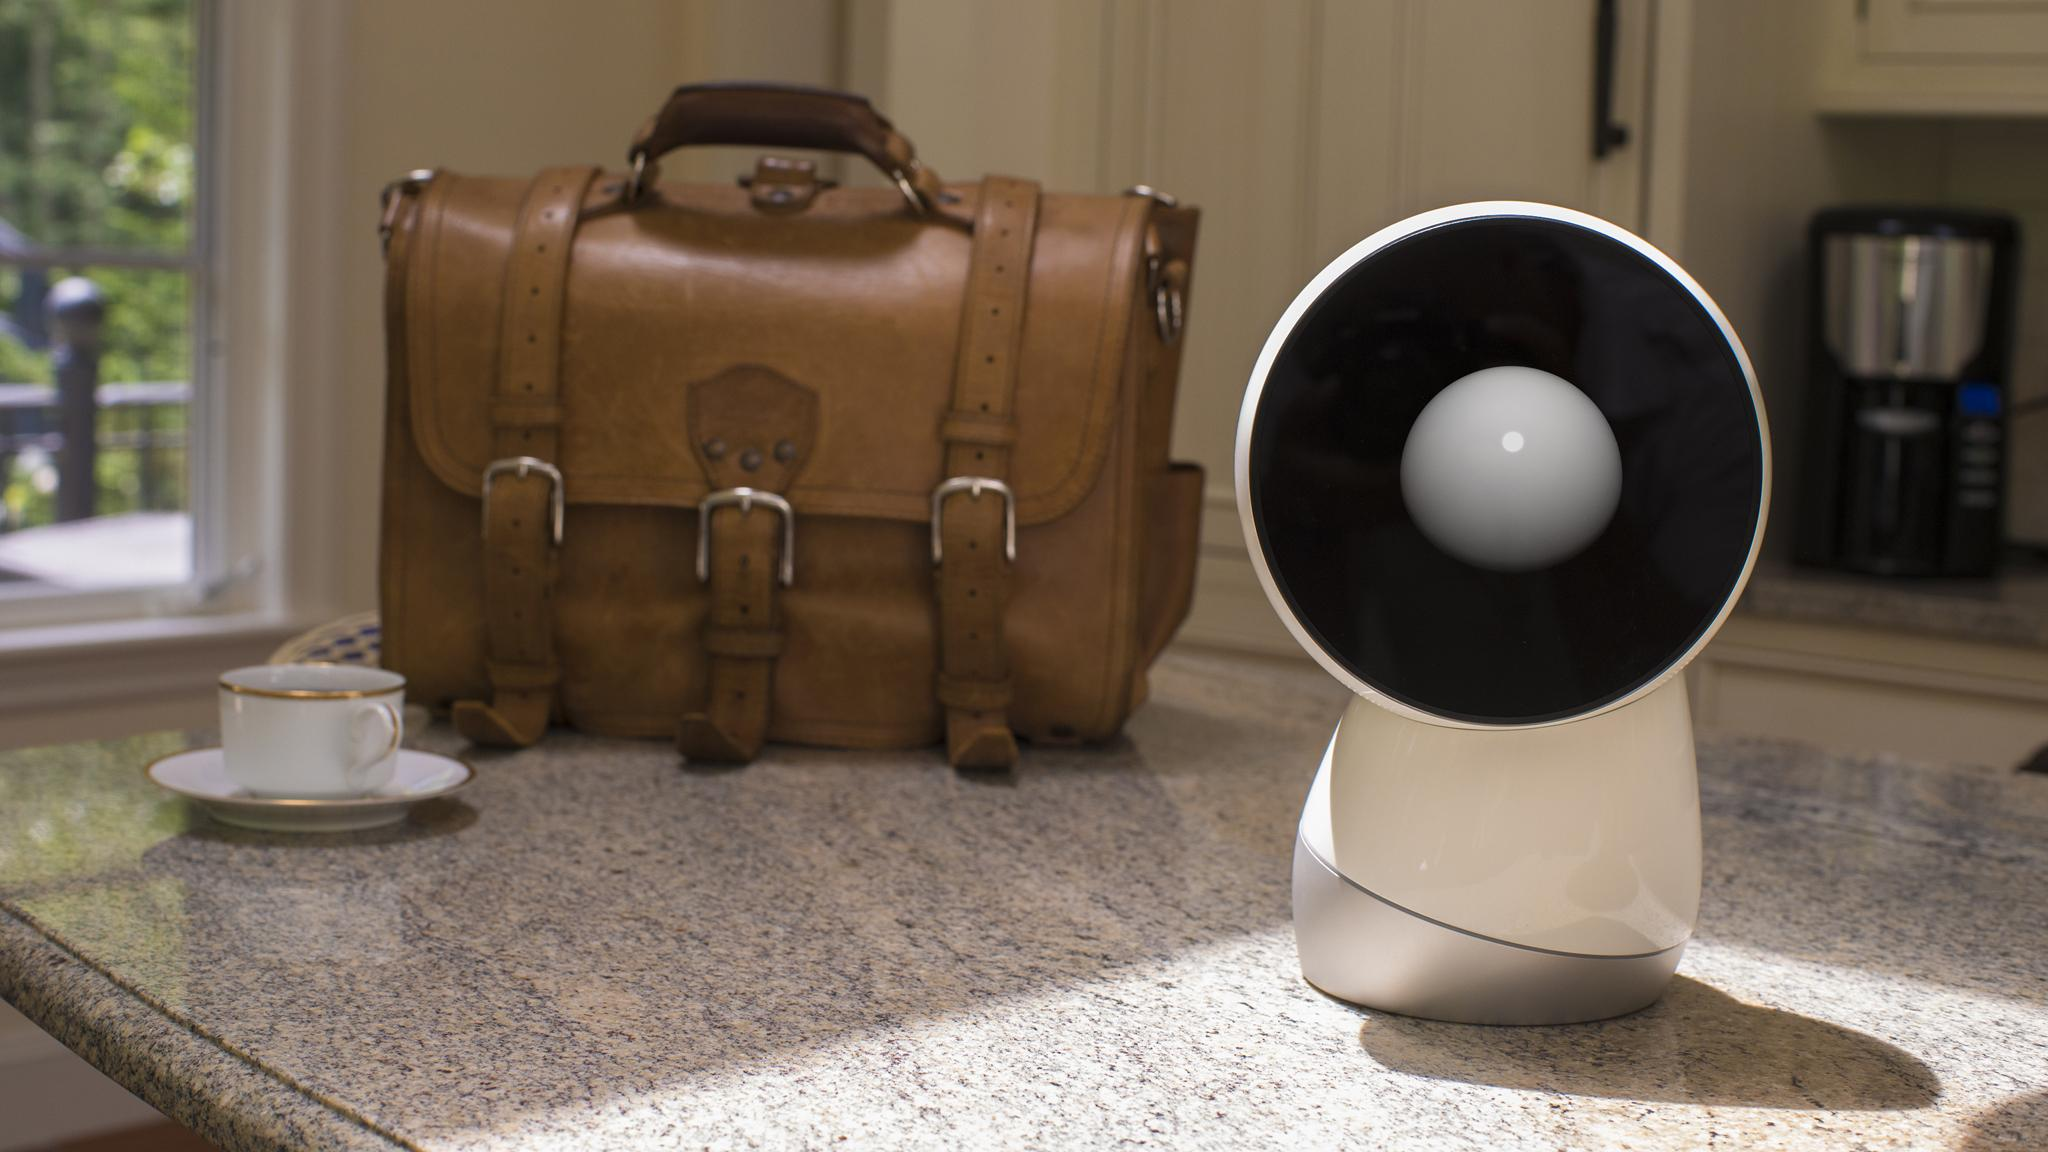 The Silver Economy: Internet of things keeps home fires burning